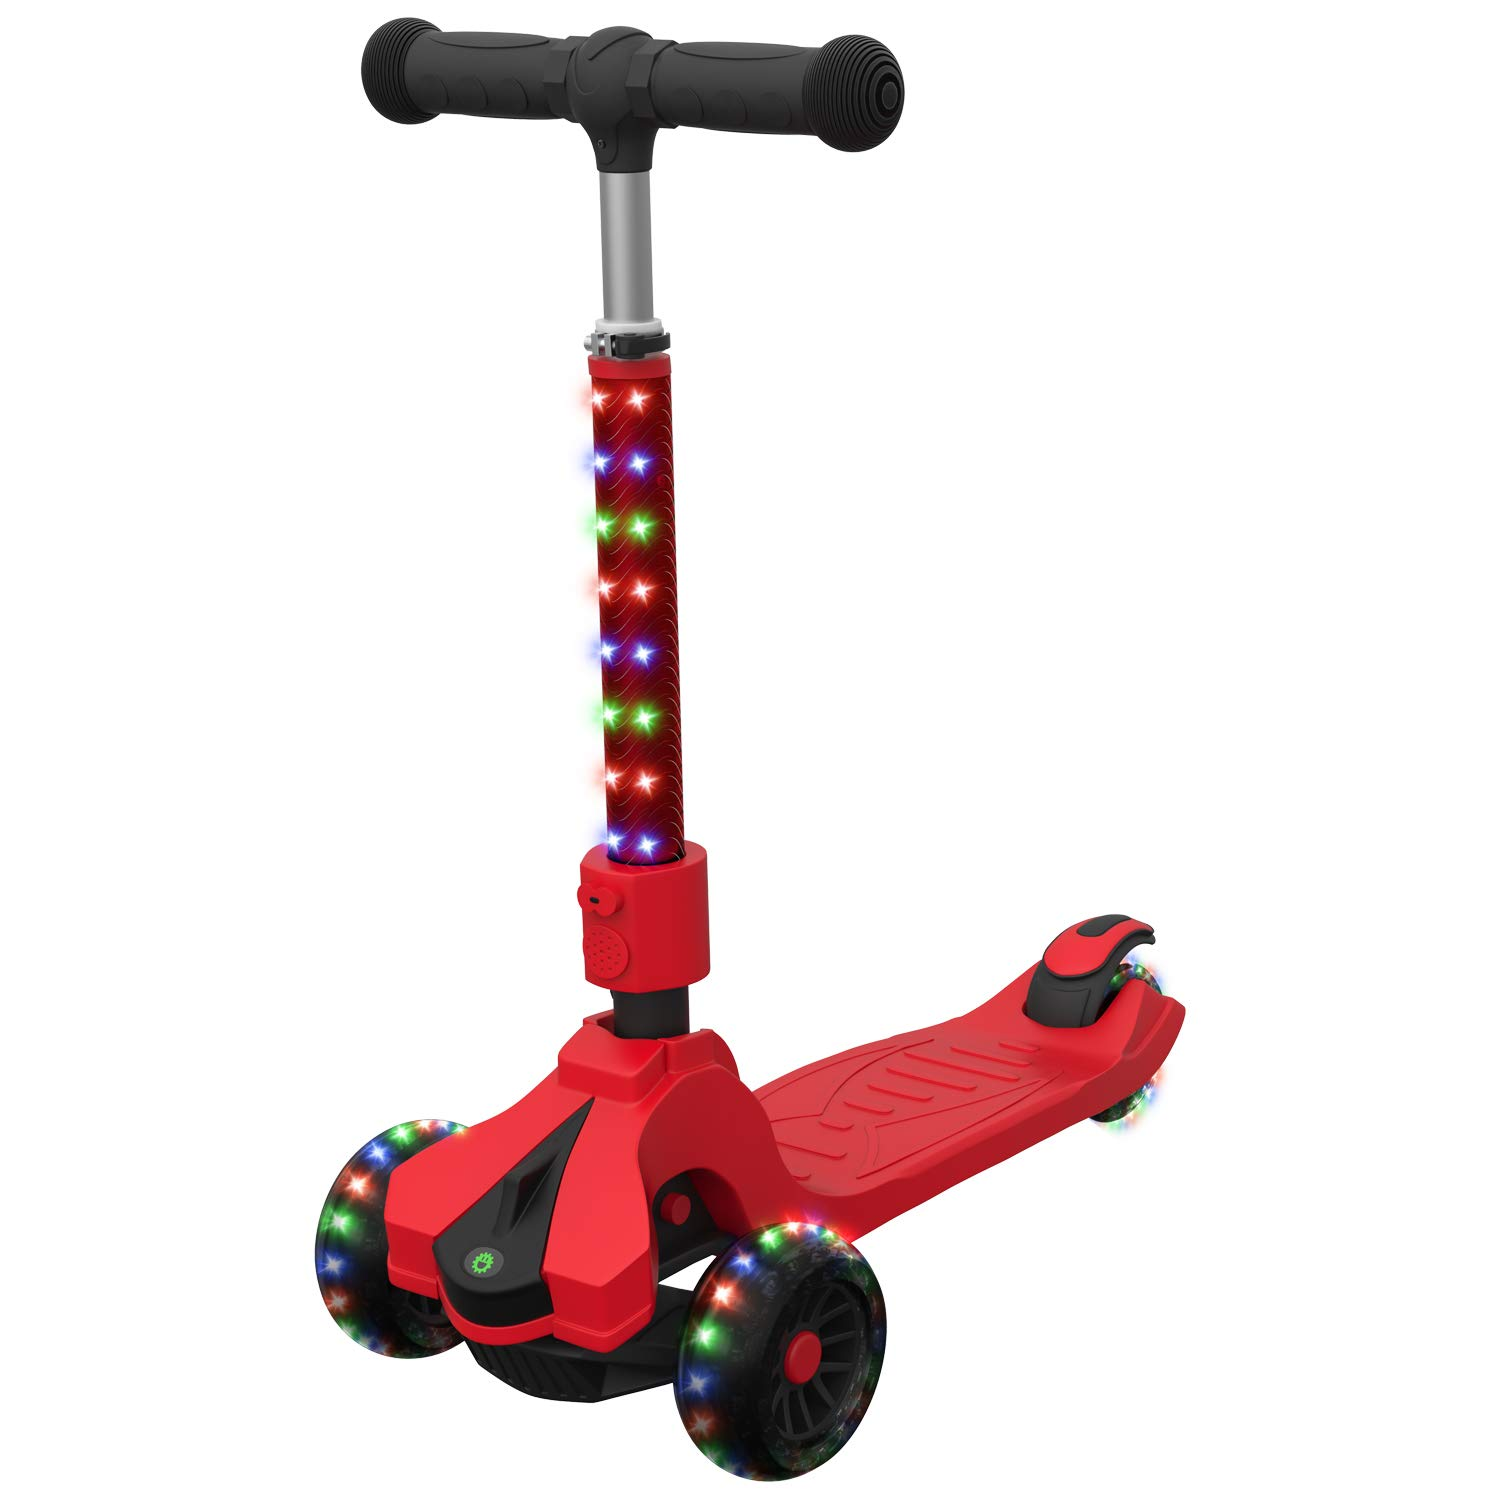 Jetson Saturn Folding 3-Wheel Kick Scooter with Light-Up Stem & Deck, Lean-to-Steer Design with Sturdy Wide Deck & Adjustable Height, for Kids 5 & Up,